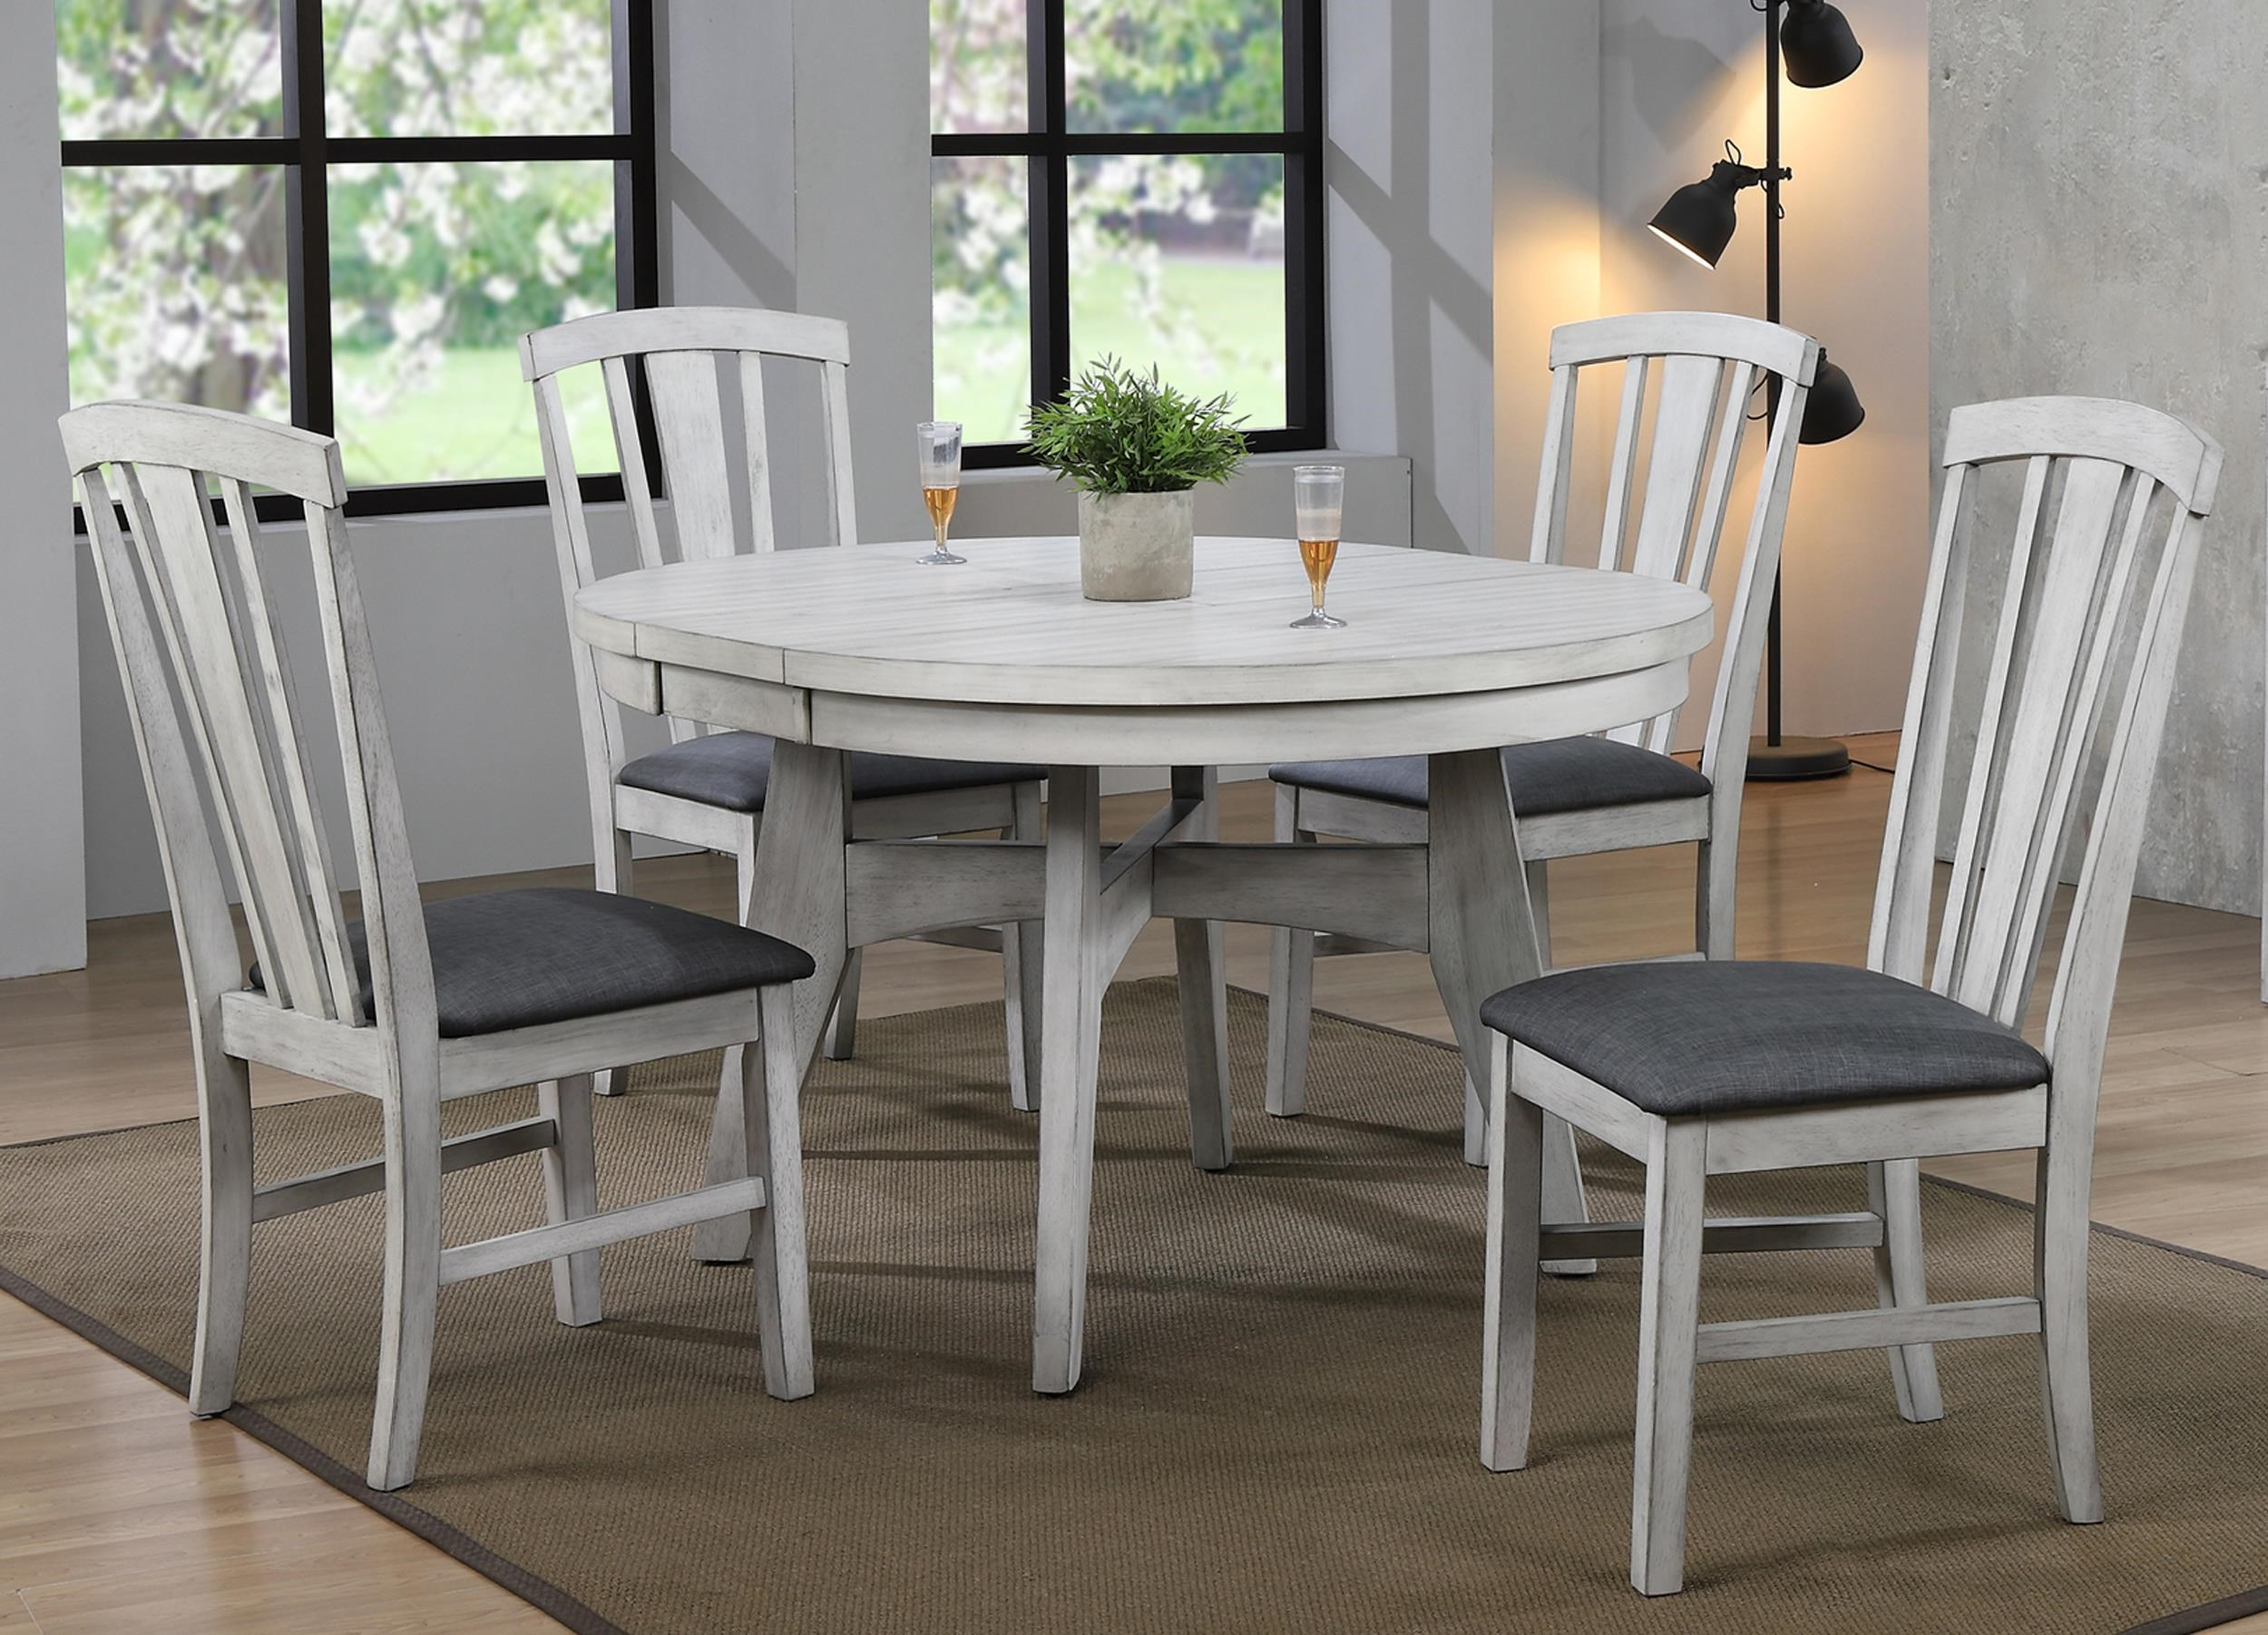 5 Piece Table and Chair Set